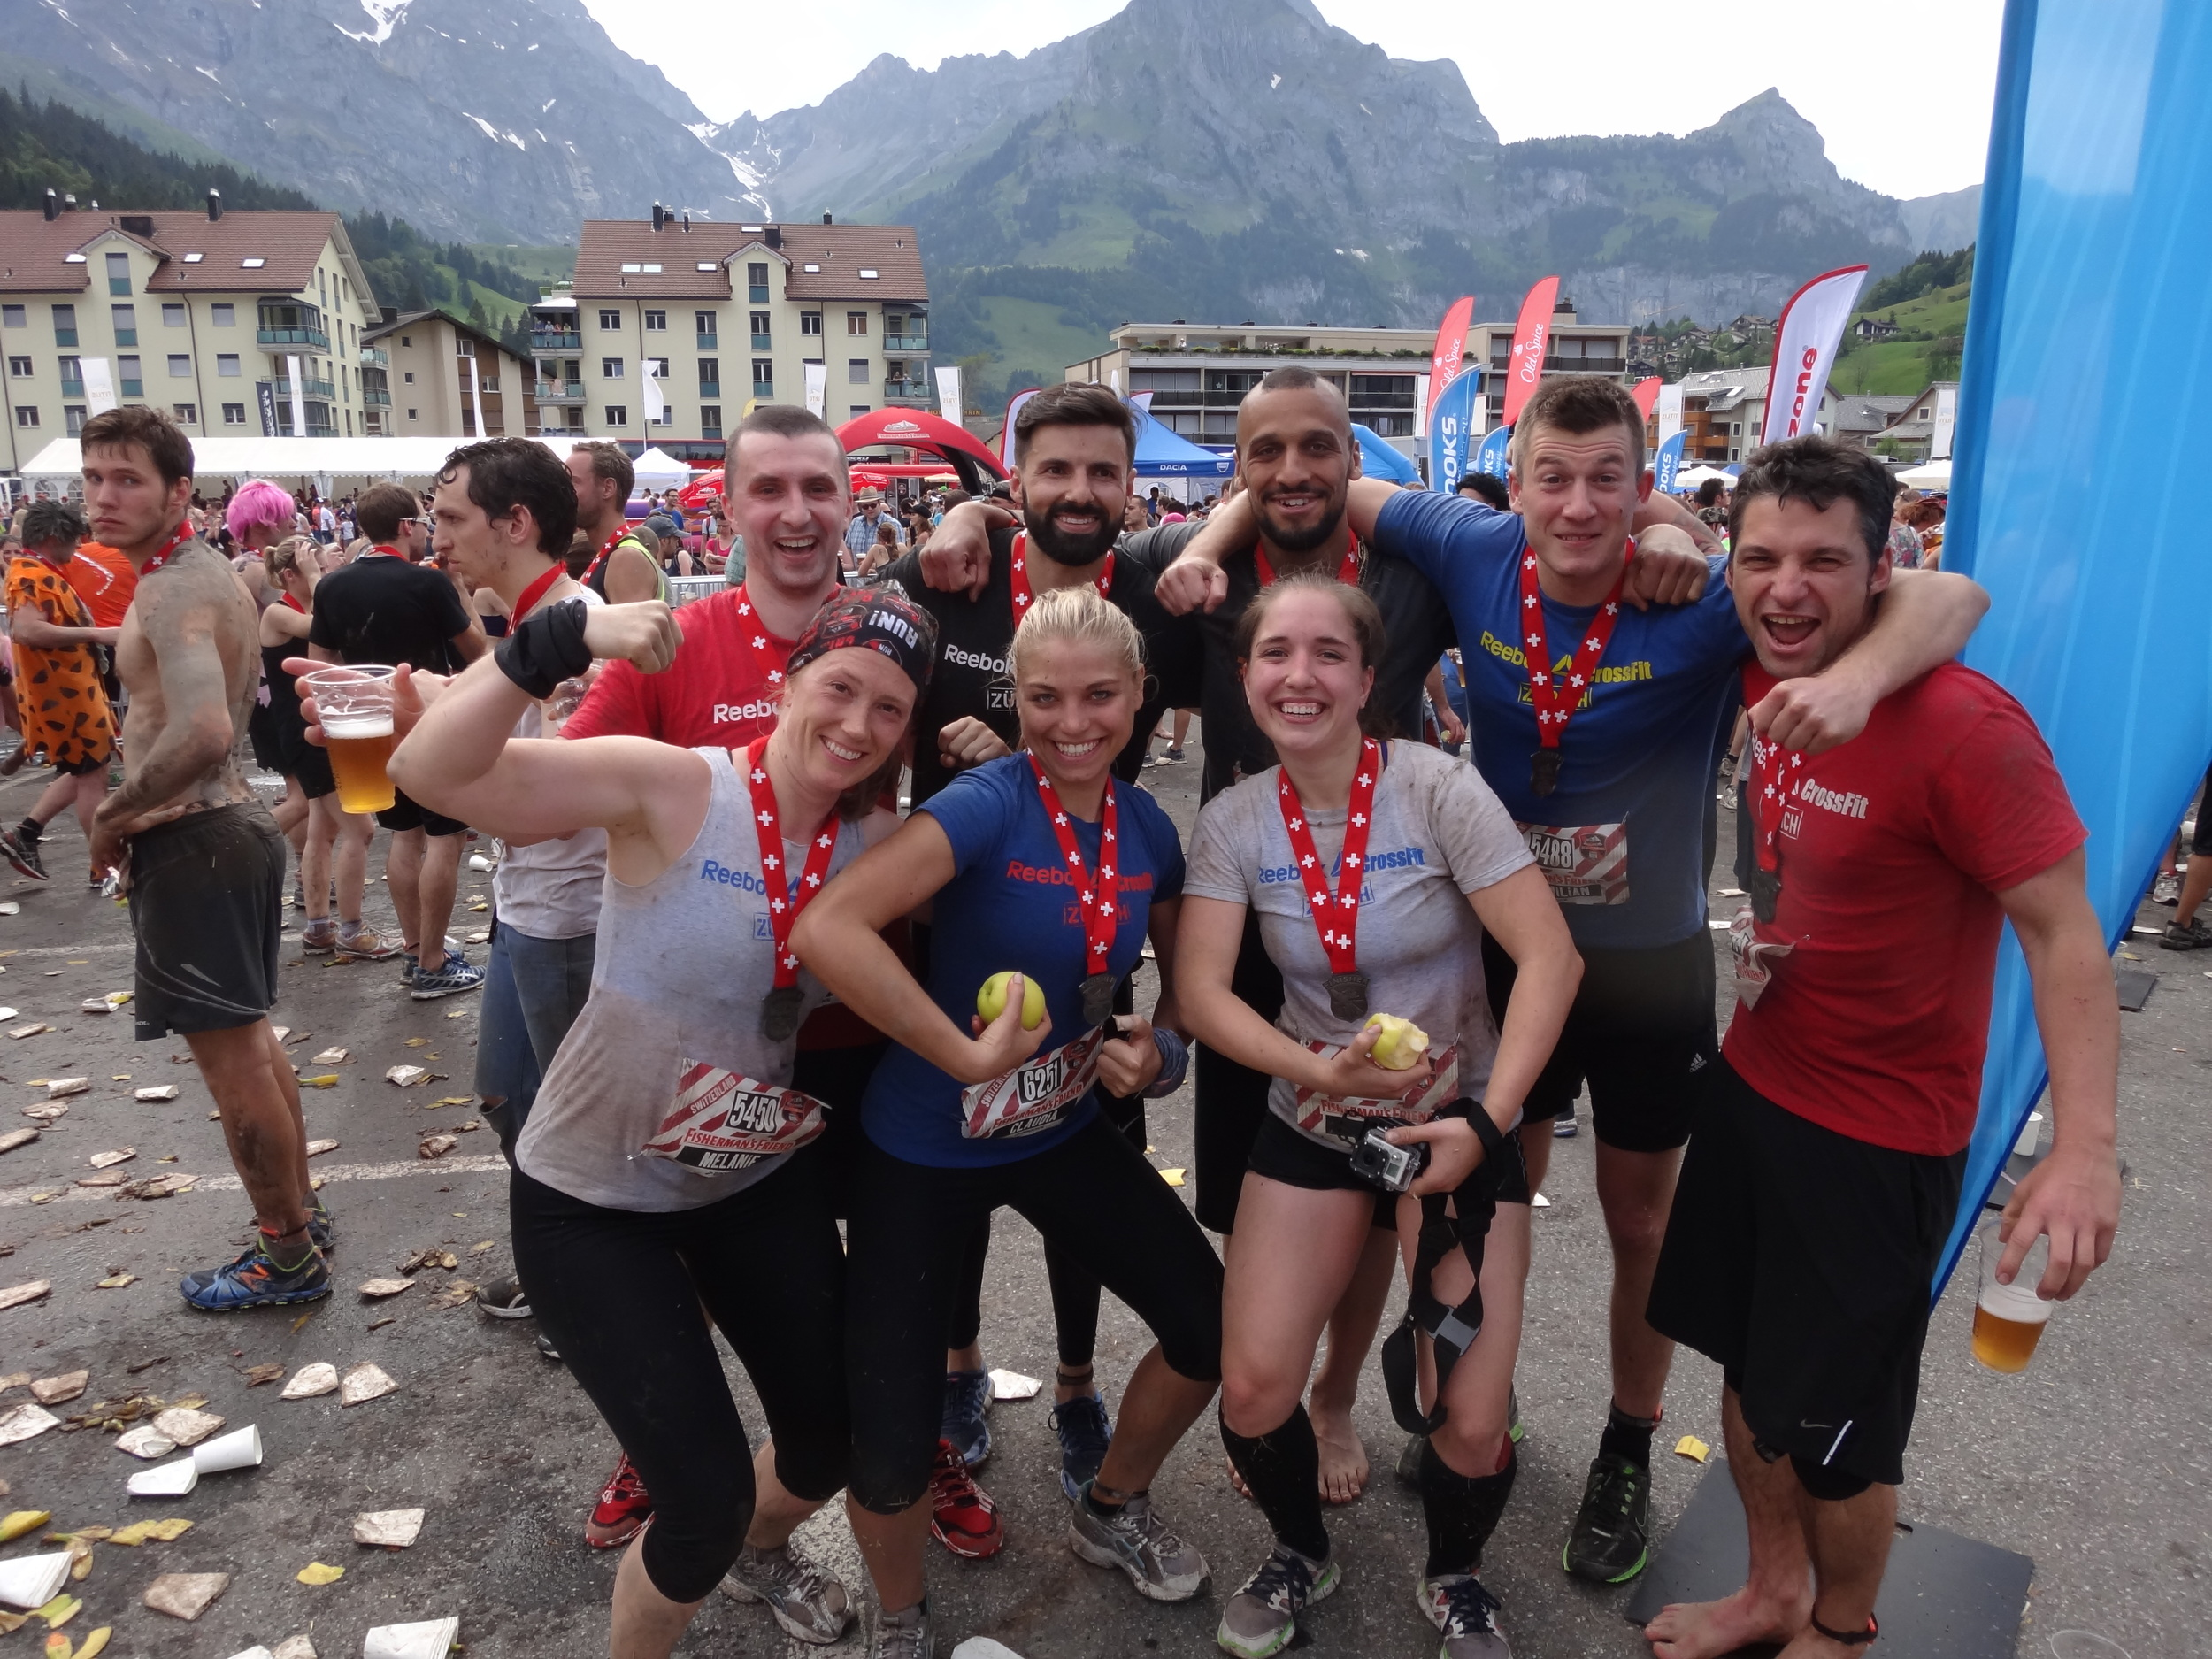 Congratulations to our Strong Women and Men who finished this years Fisherman's Friend Strongman run! A grueling 22k obstacle race in the burning sun!Great Job Ben, Filipe, Mister T, Maximilian, Sasha, Mel, Claudia and Cavide!